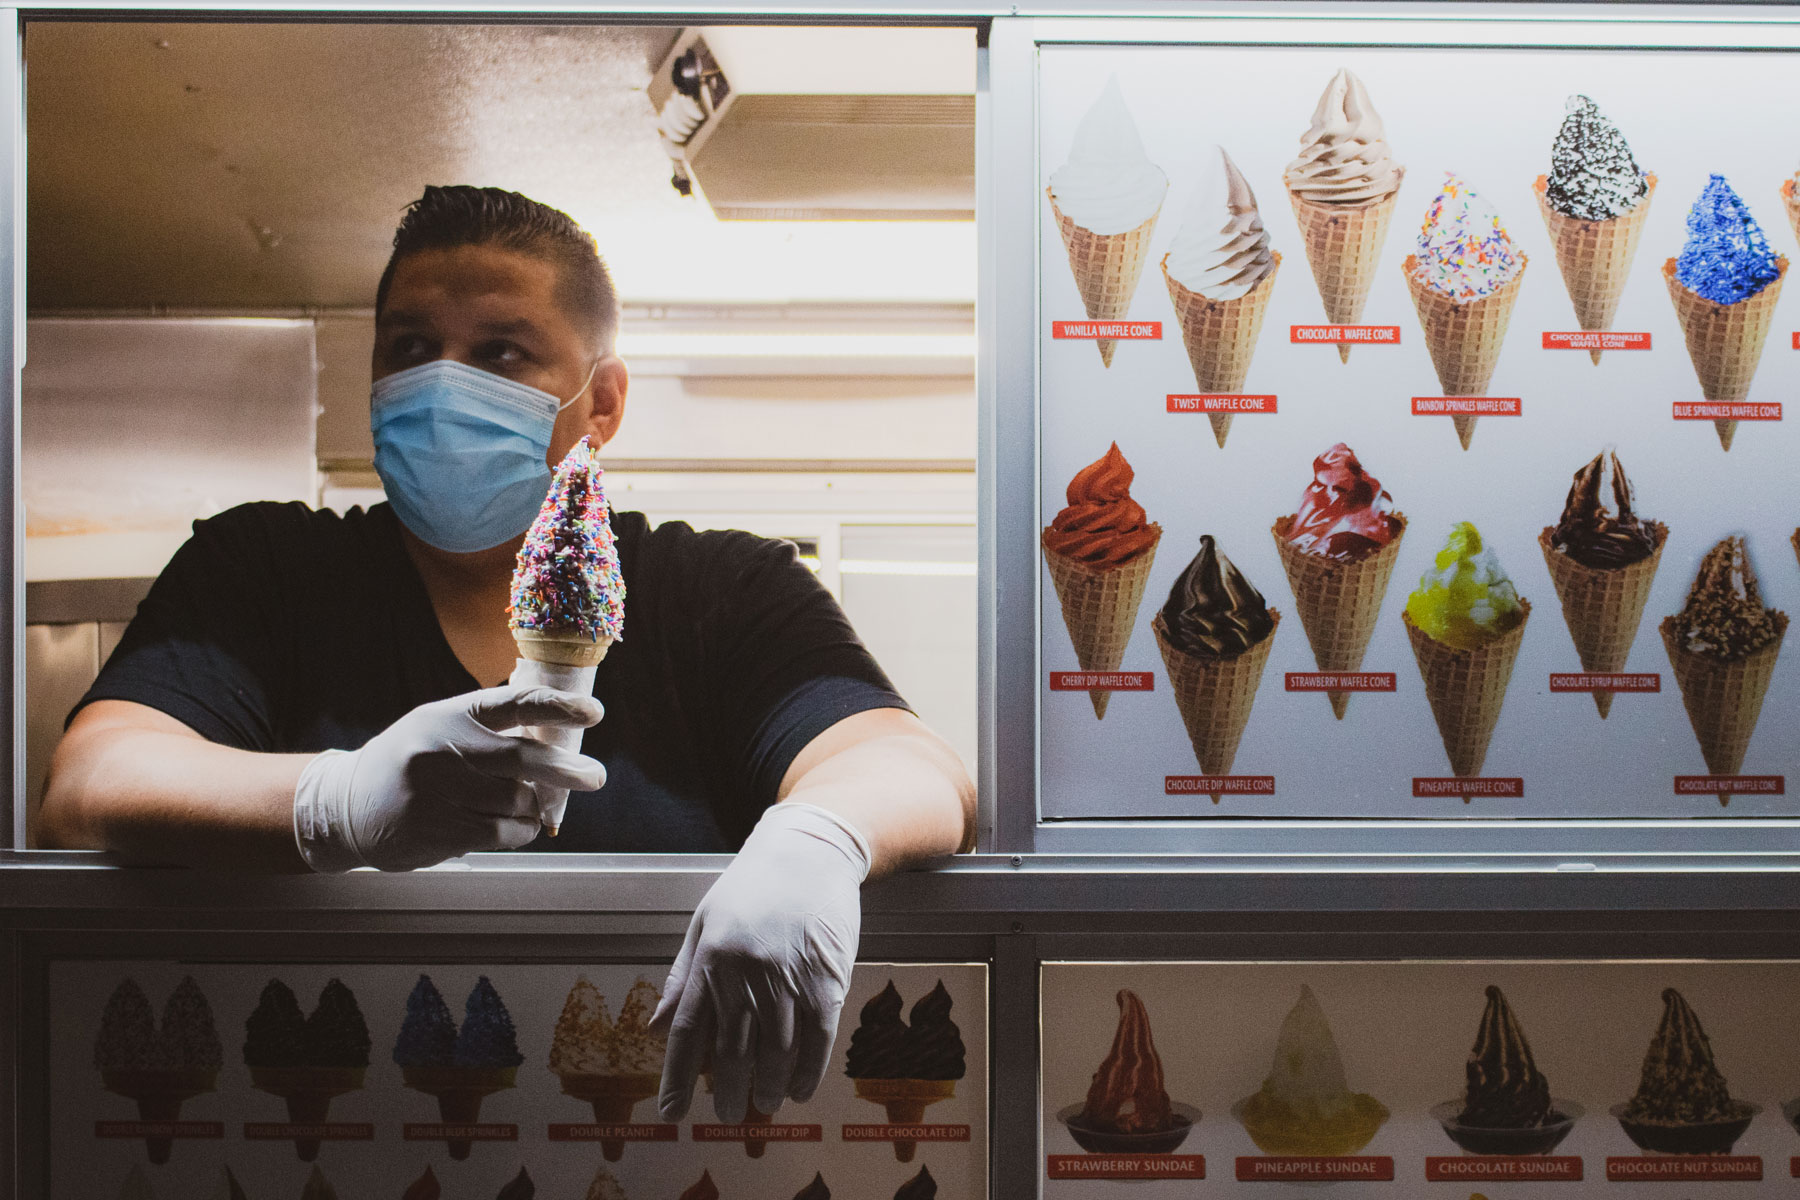 Andy Alvarez inside his ice cream truck holding an ice cream cone loaded with sprinkles.